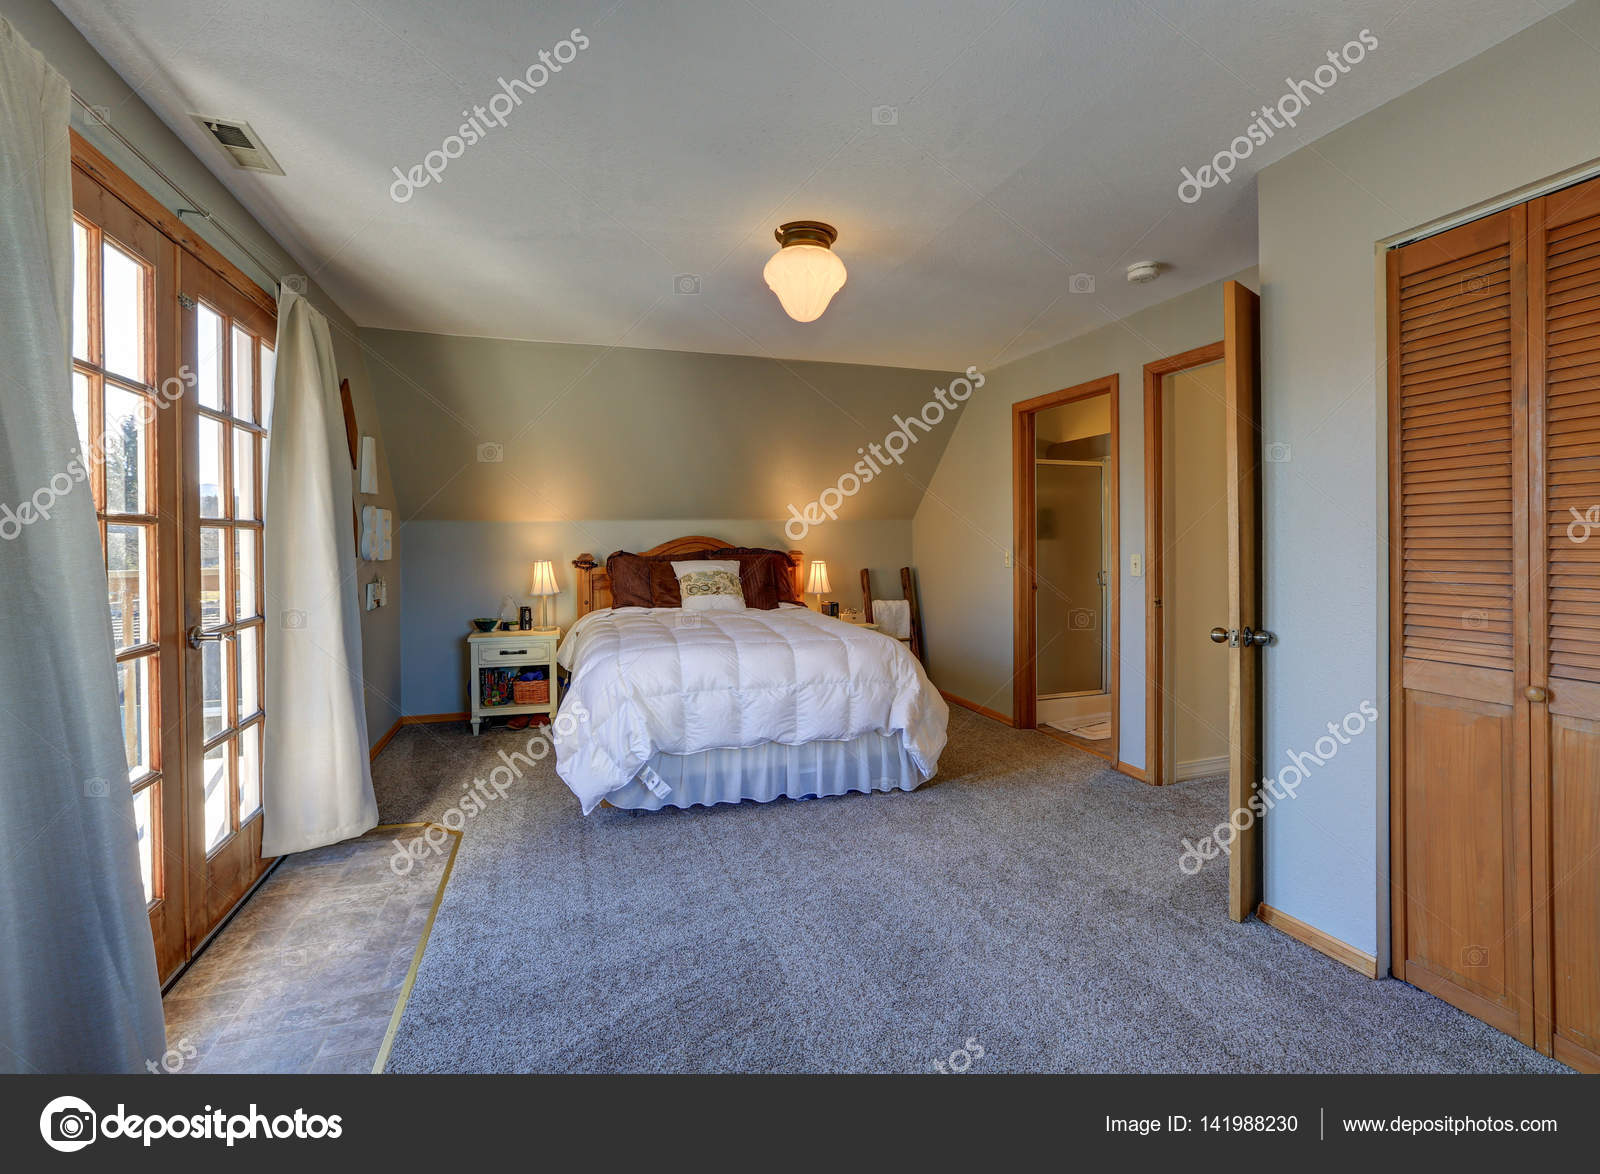 depositphotos stock photo tranquil bedroom with sloped ceiling